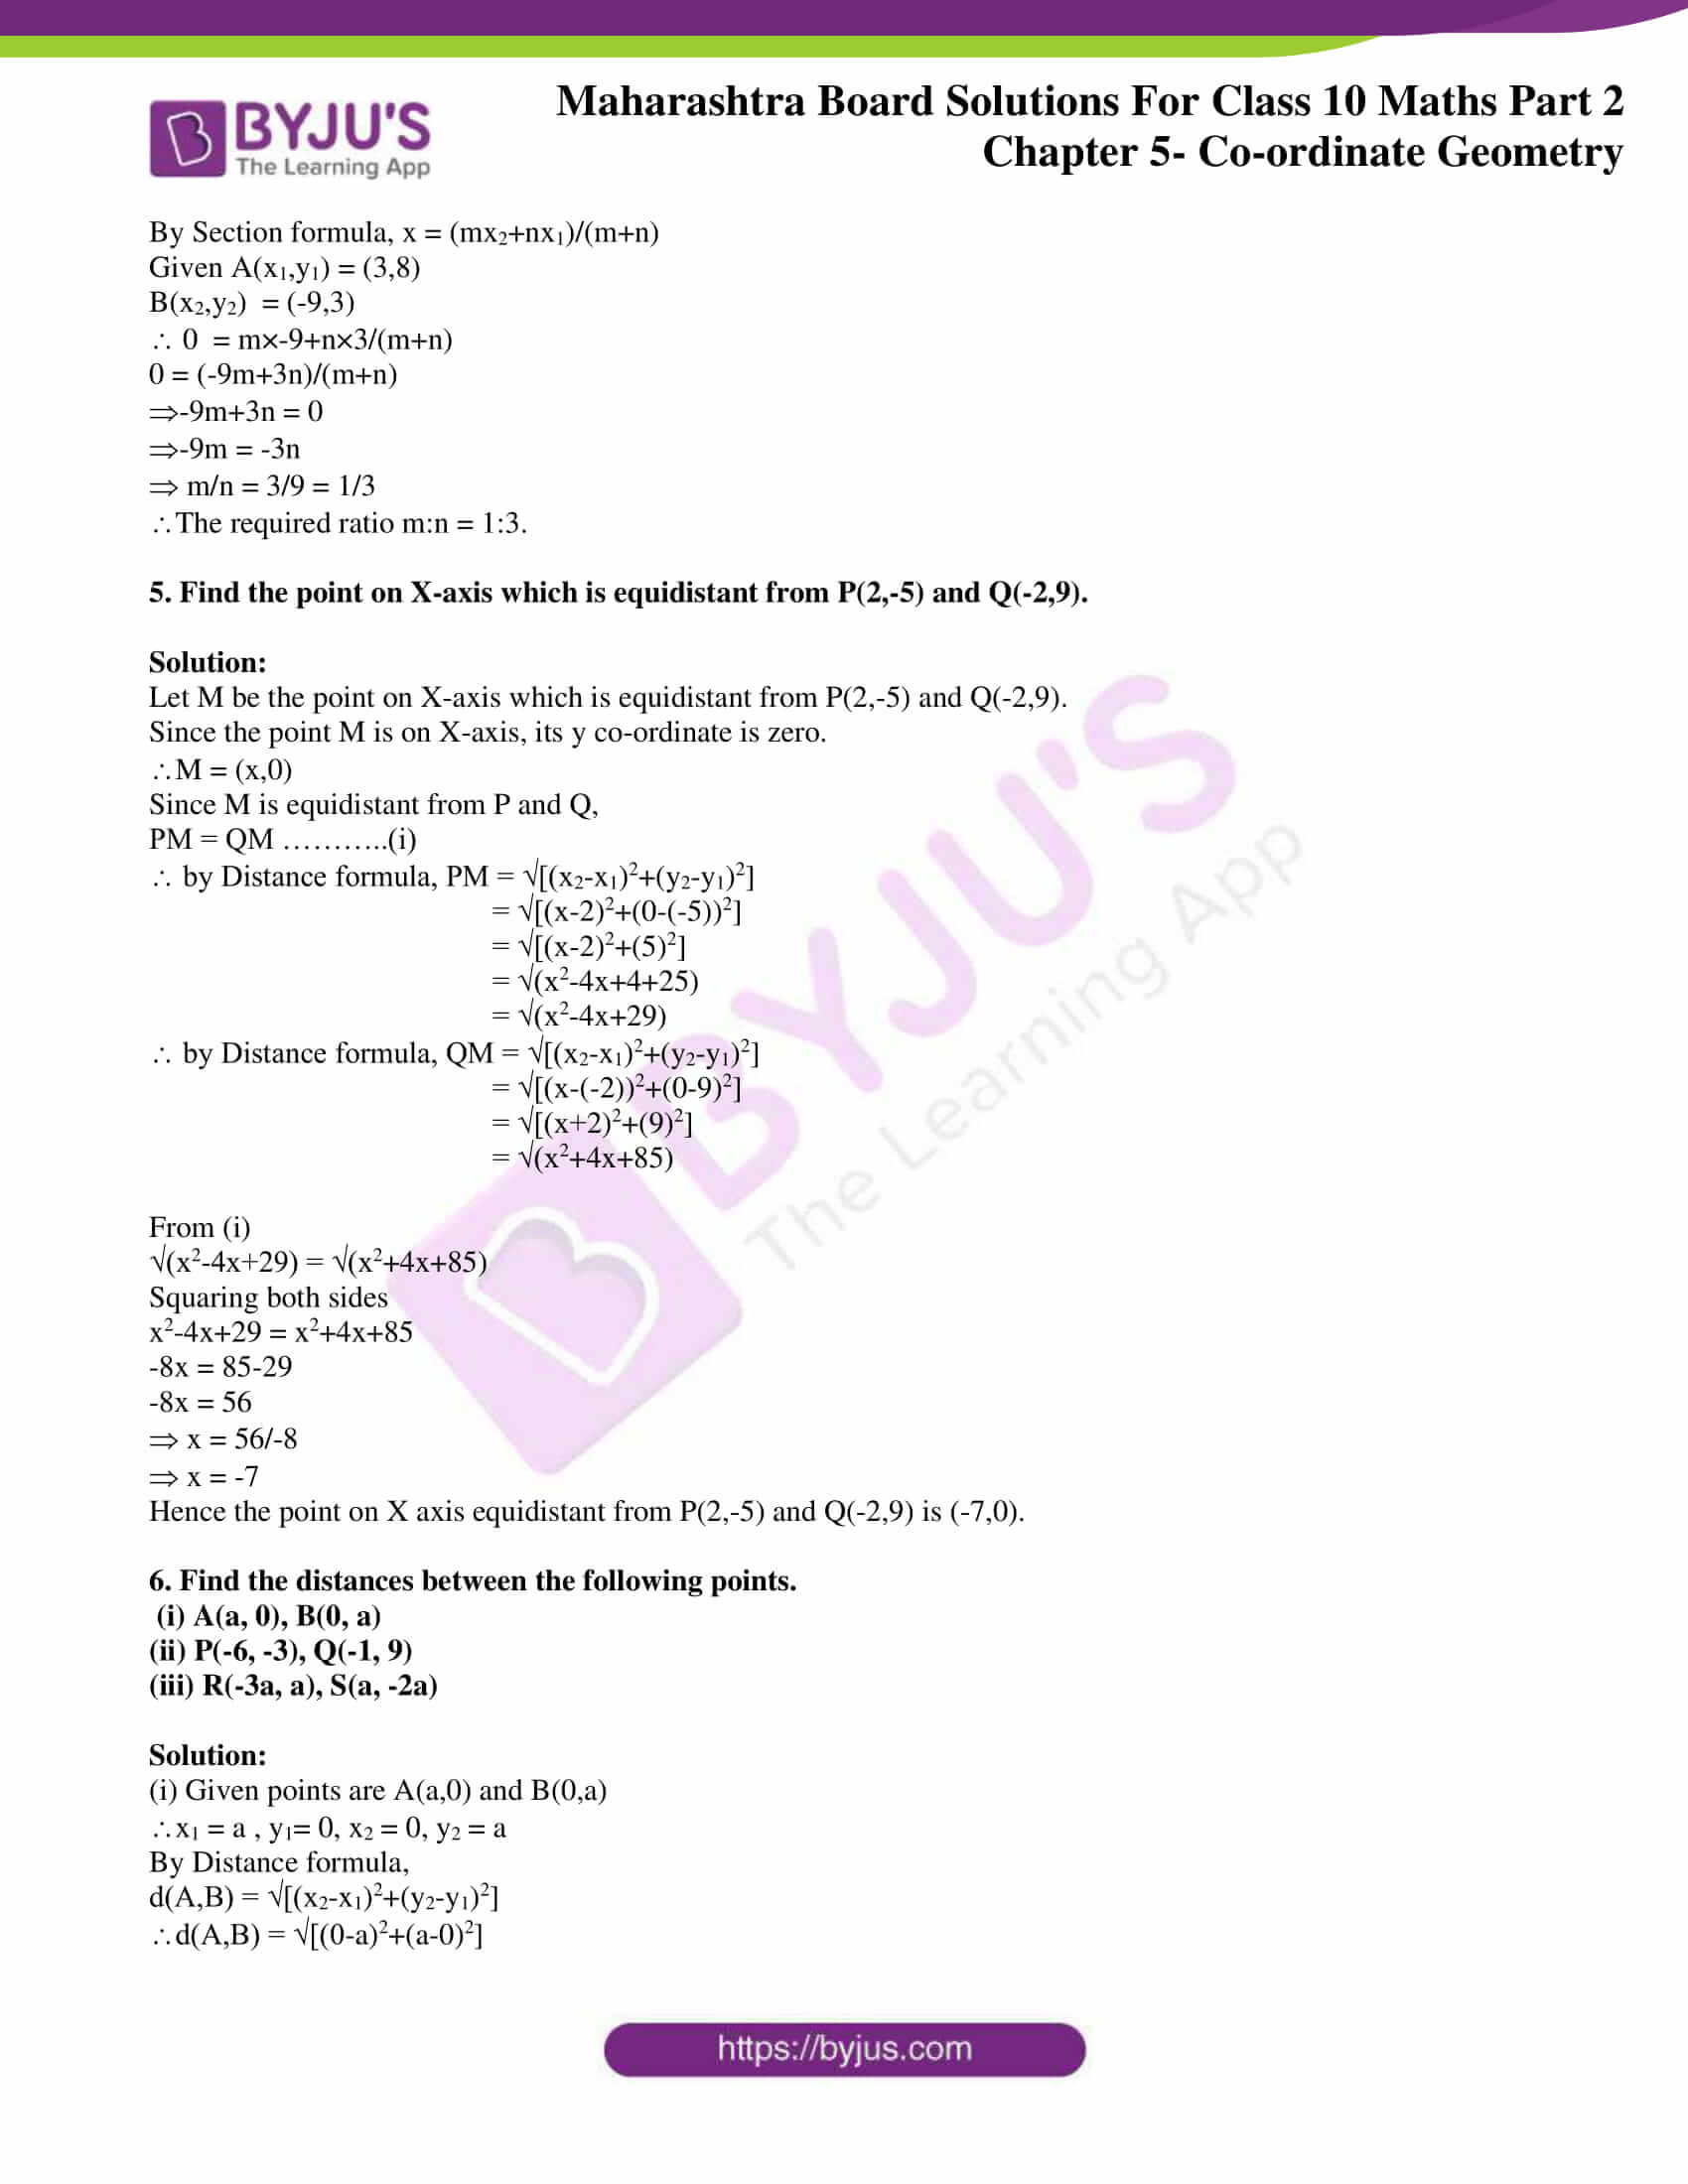 msbshse sol class 10 maths part 2 chapter 5 14